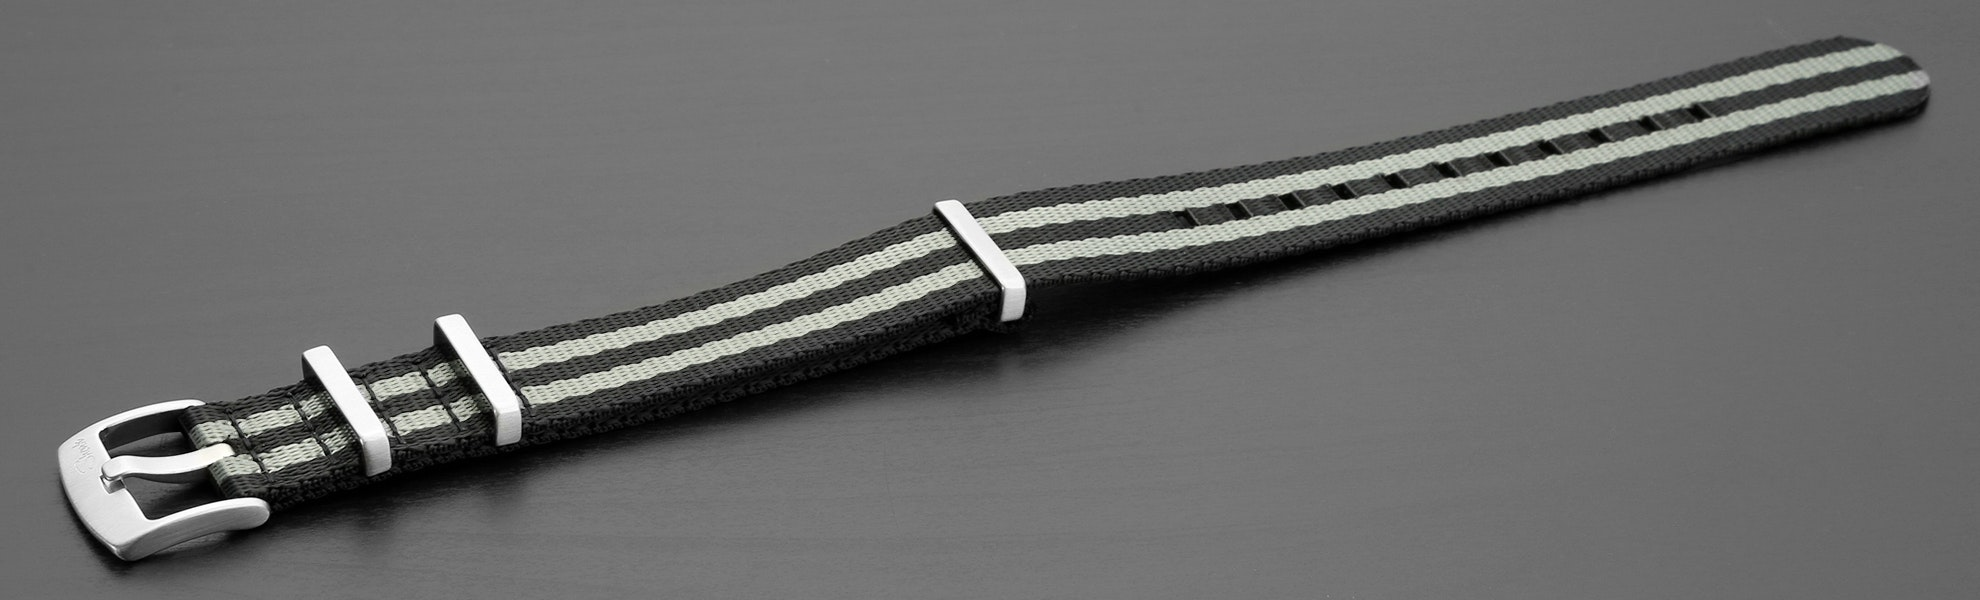 BluShark AlphaShark Bond Watch Strap